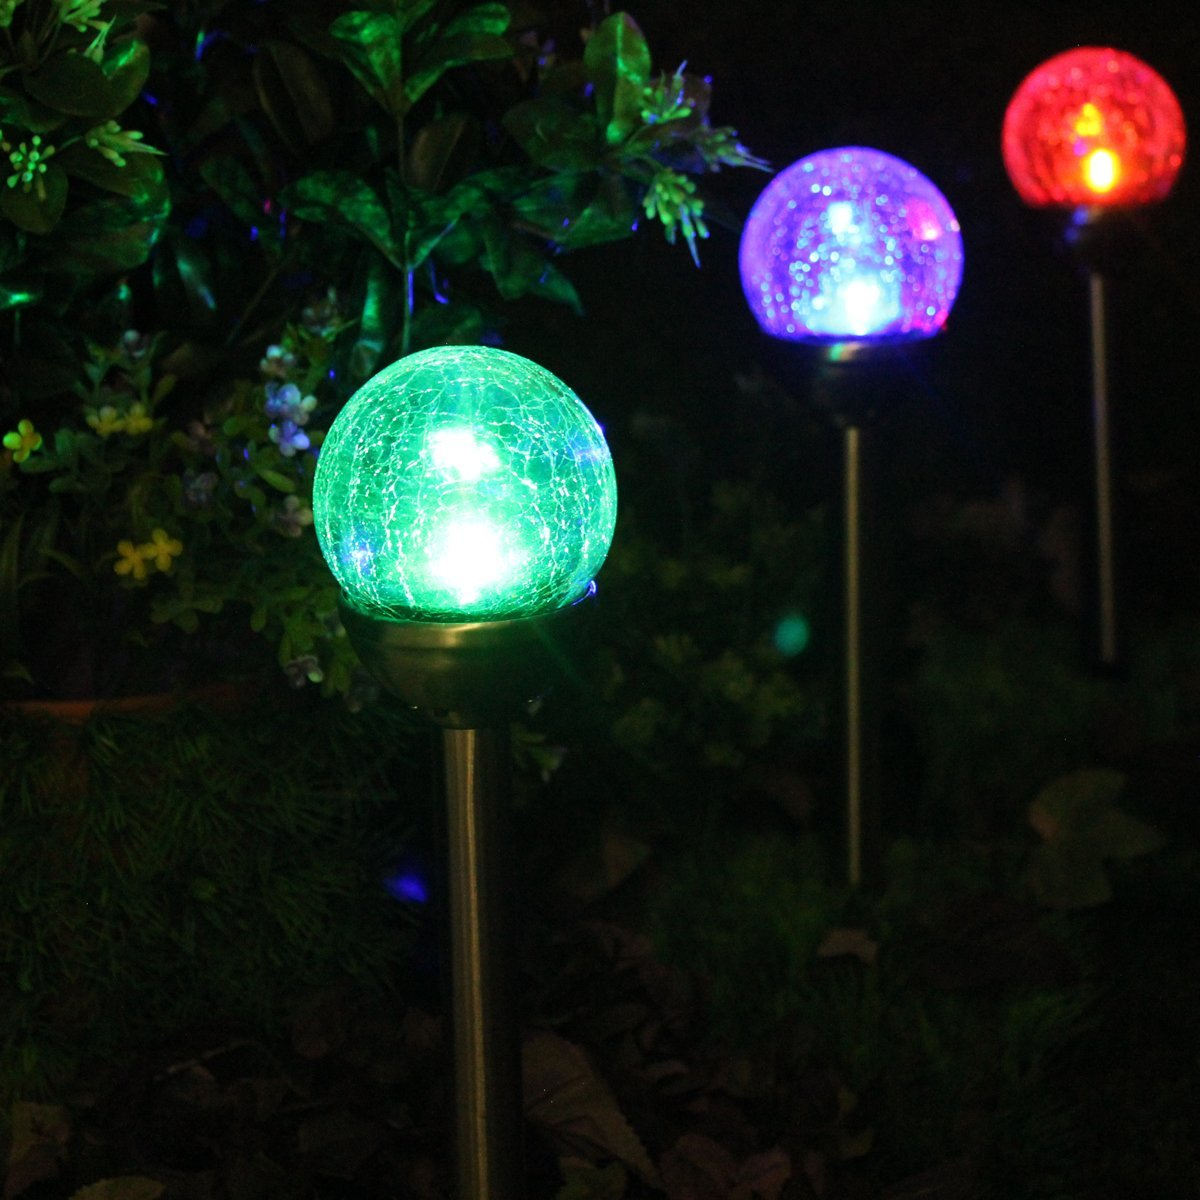 outdoor lighting balls. SOLAscape Crackle Glass Globe Color-Changing \u0026 White LED, Stainless Steel Solar Path Lights, Set Of 6 - Amazon.com Outdoor Lighting Balls